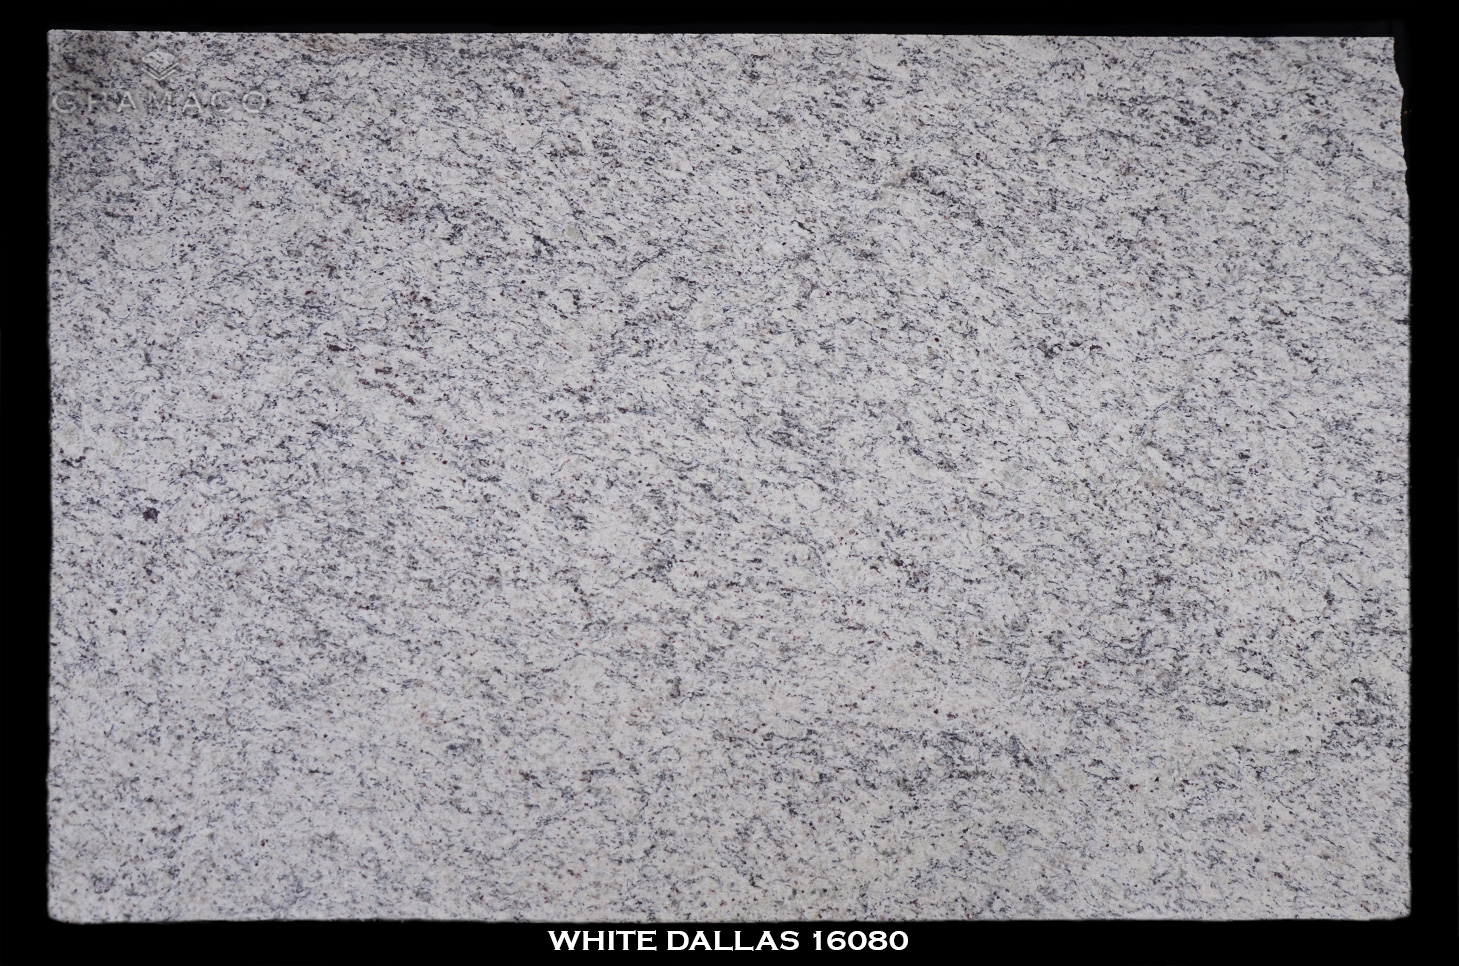 WHITE-DALLAS-16080--FULL-SLAB-BLACK